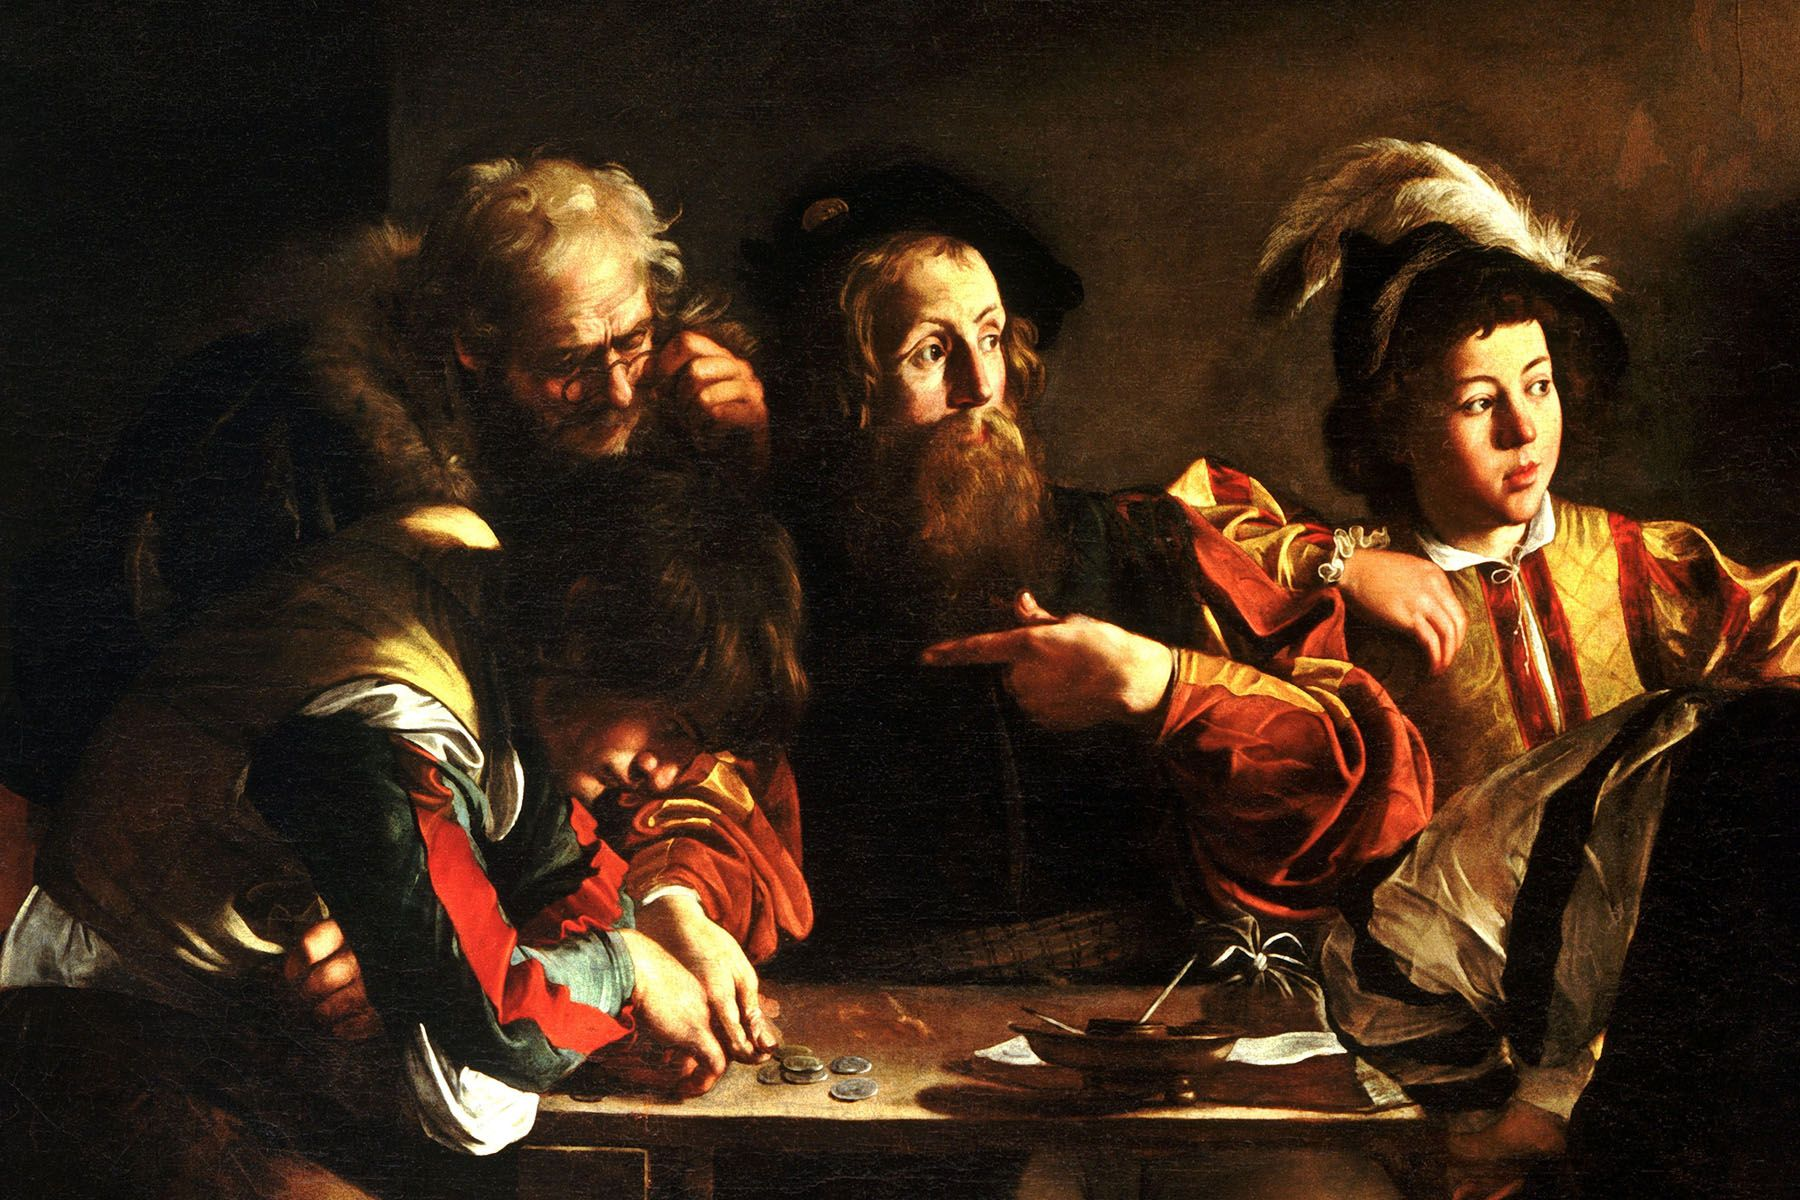 epistemology essay history in knowledge religion religious scripture study Follows from locke's general skepticism about history 22 knowledge that the bible was religion the lockean religious epistemology of the.